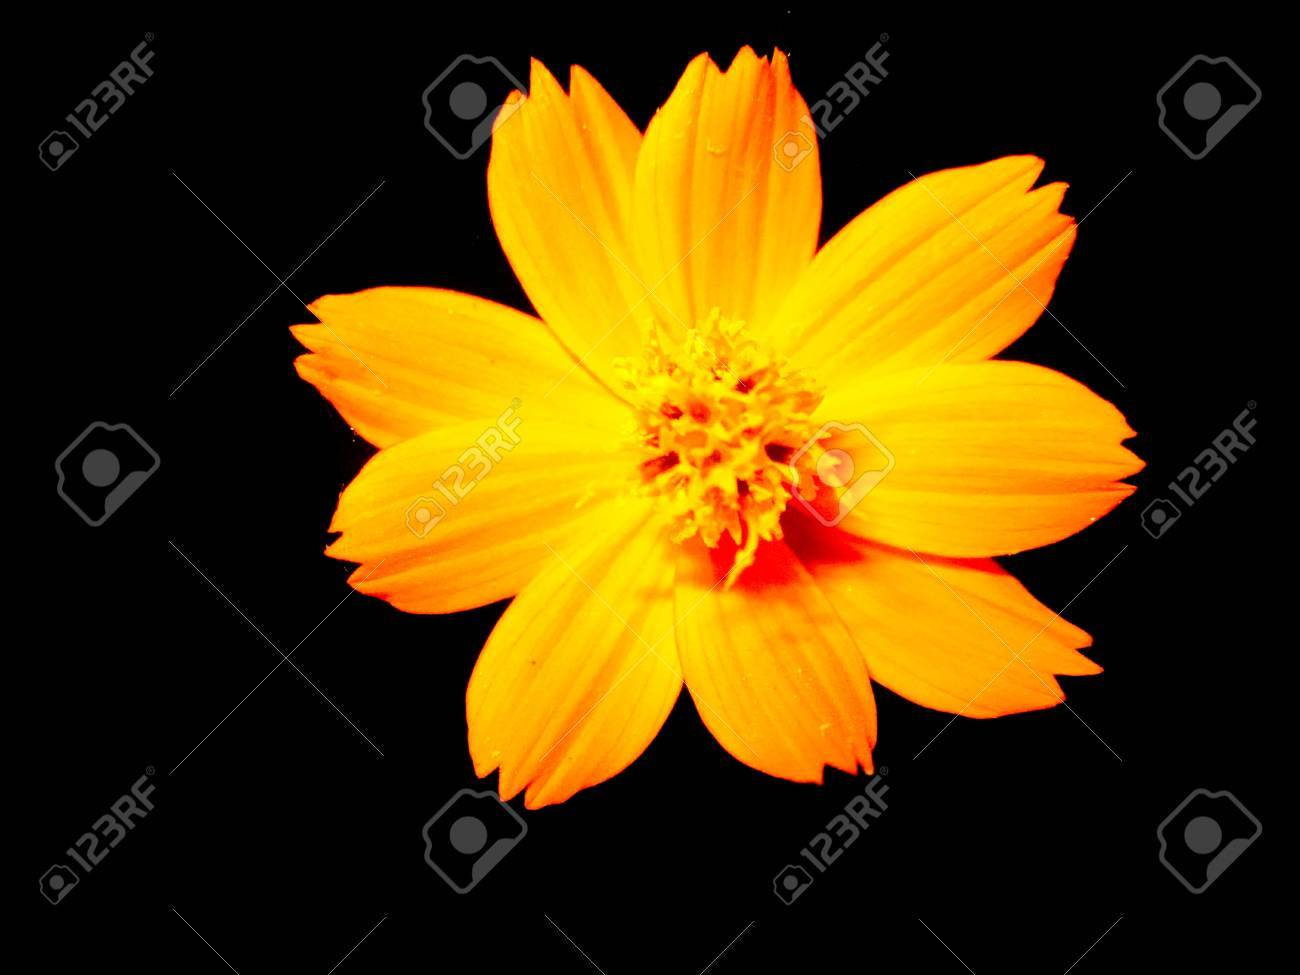 Yellow Flower Flower Wallpaper Black Background